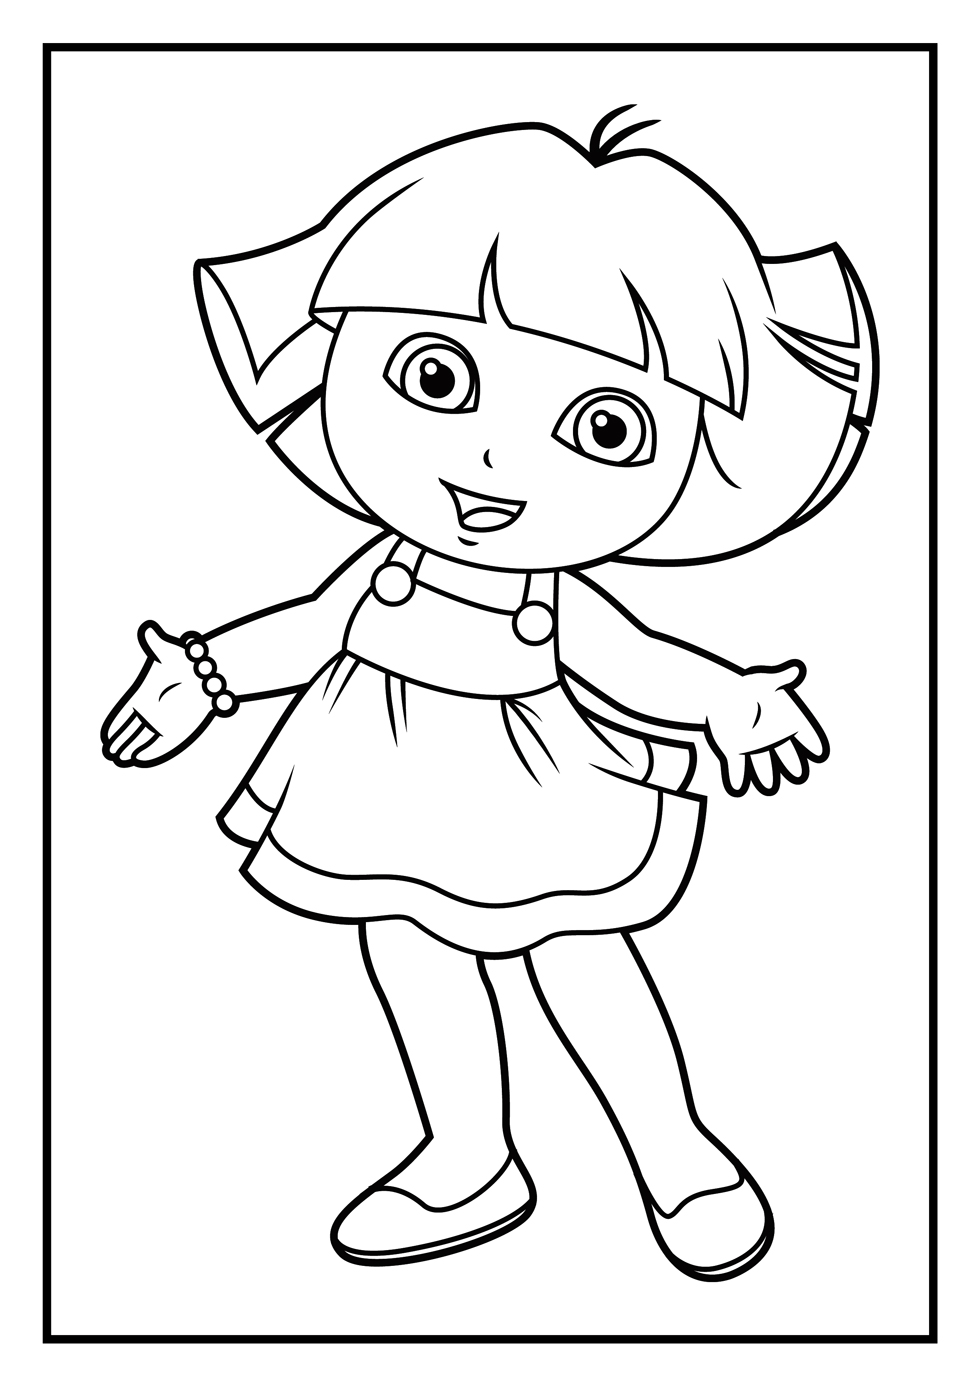 Dora Games Coloring Pages Coloring